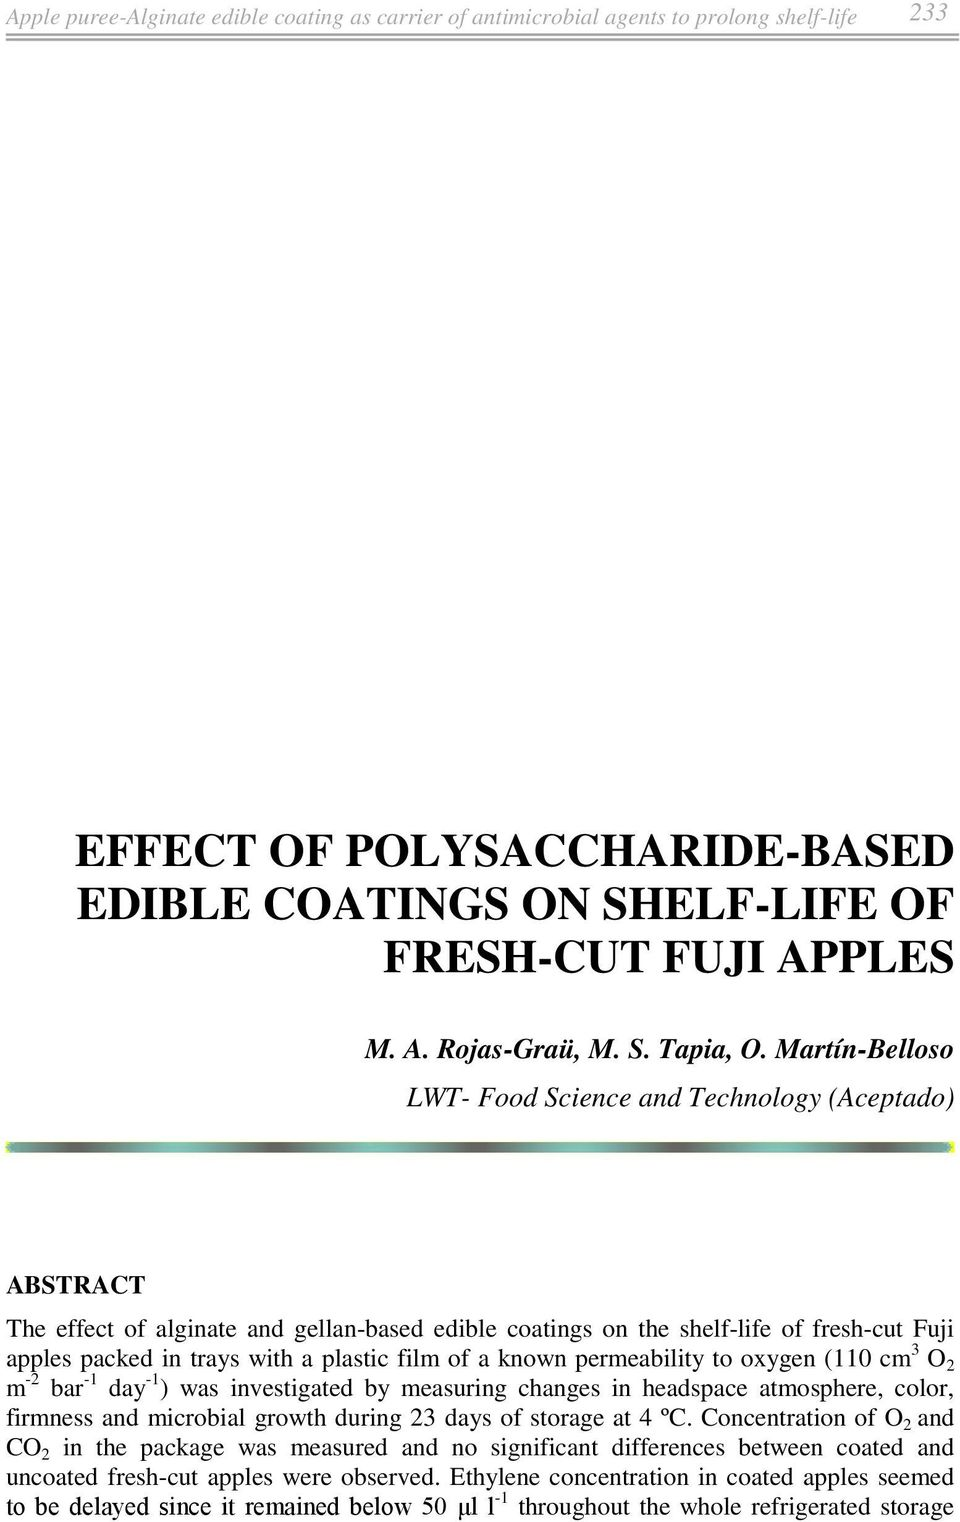 Martín-Belloso LWT- Food Science and Technology (Aceptado) ABSTRACT The effect of alginate and gellan-based edible coatings on the shelf-life of fresh-cut Fuji apples packed in trays with a plastic